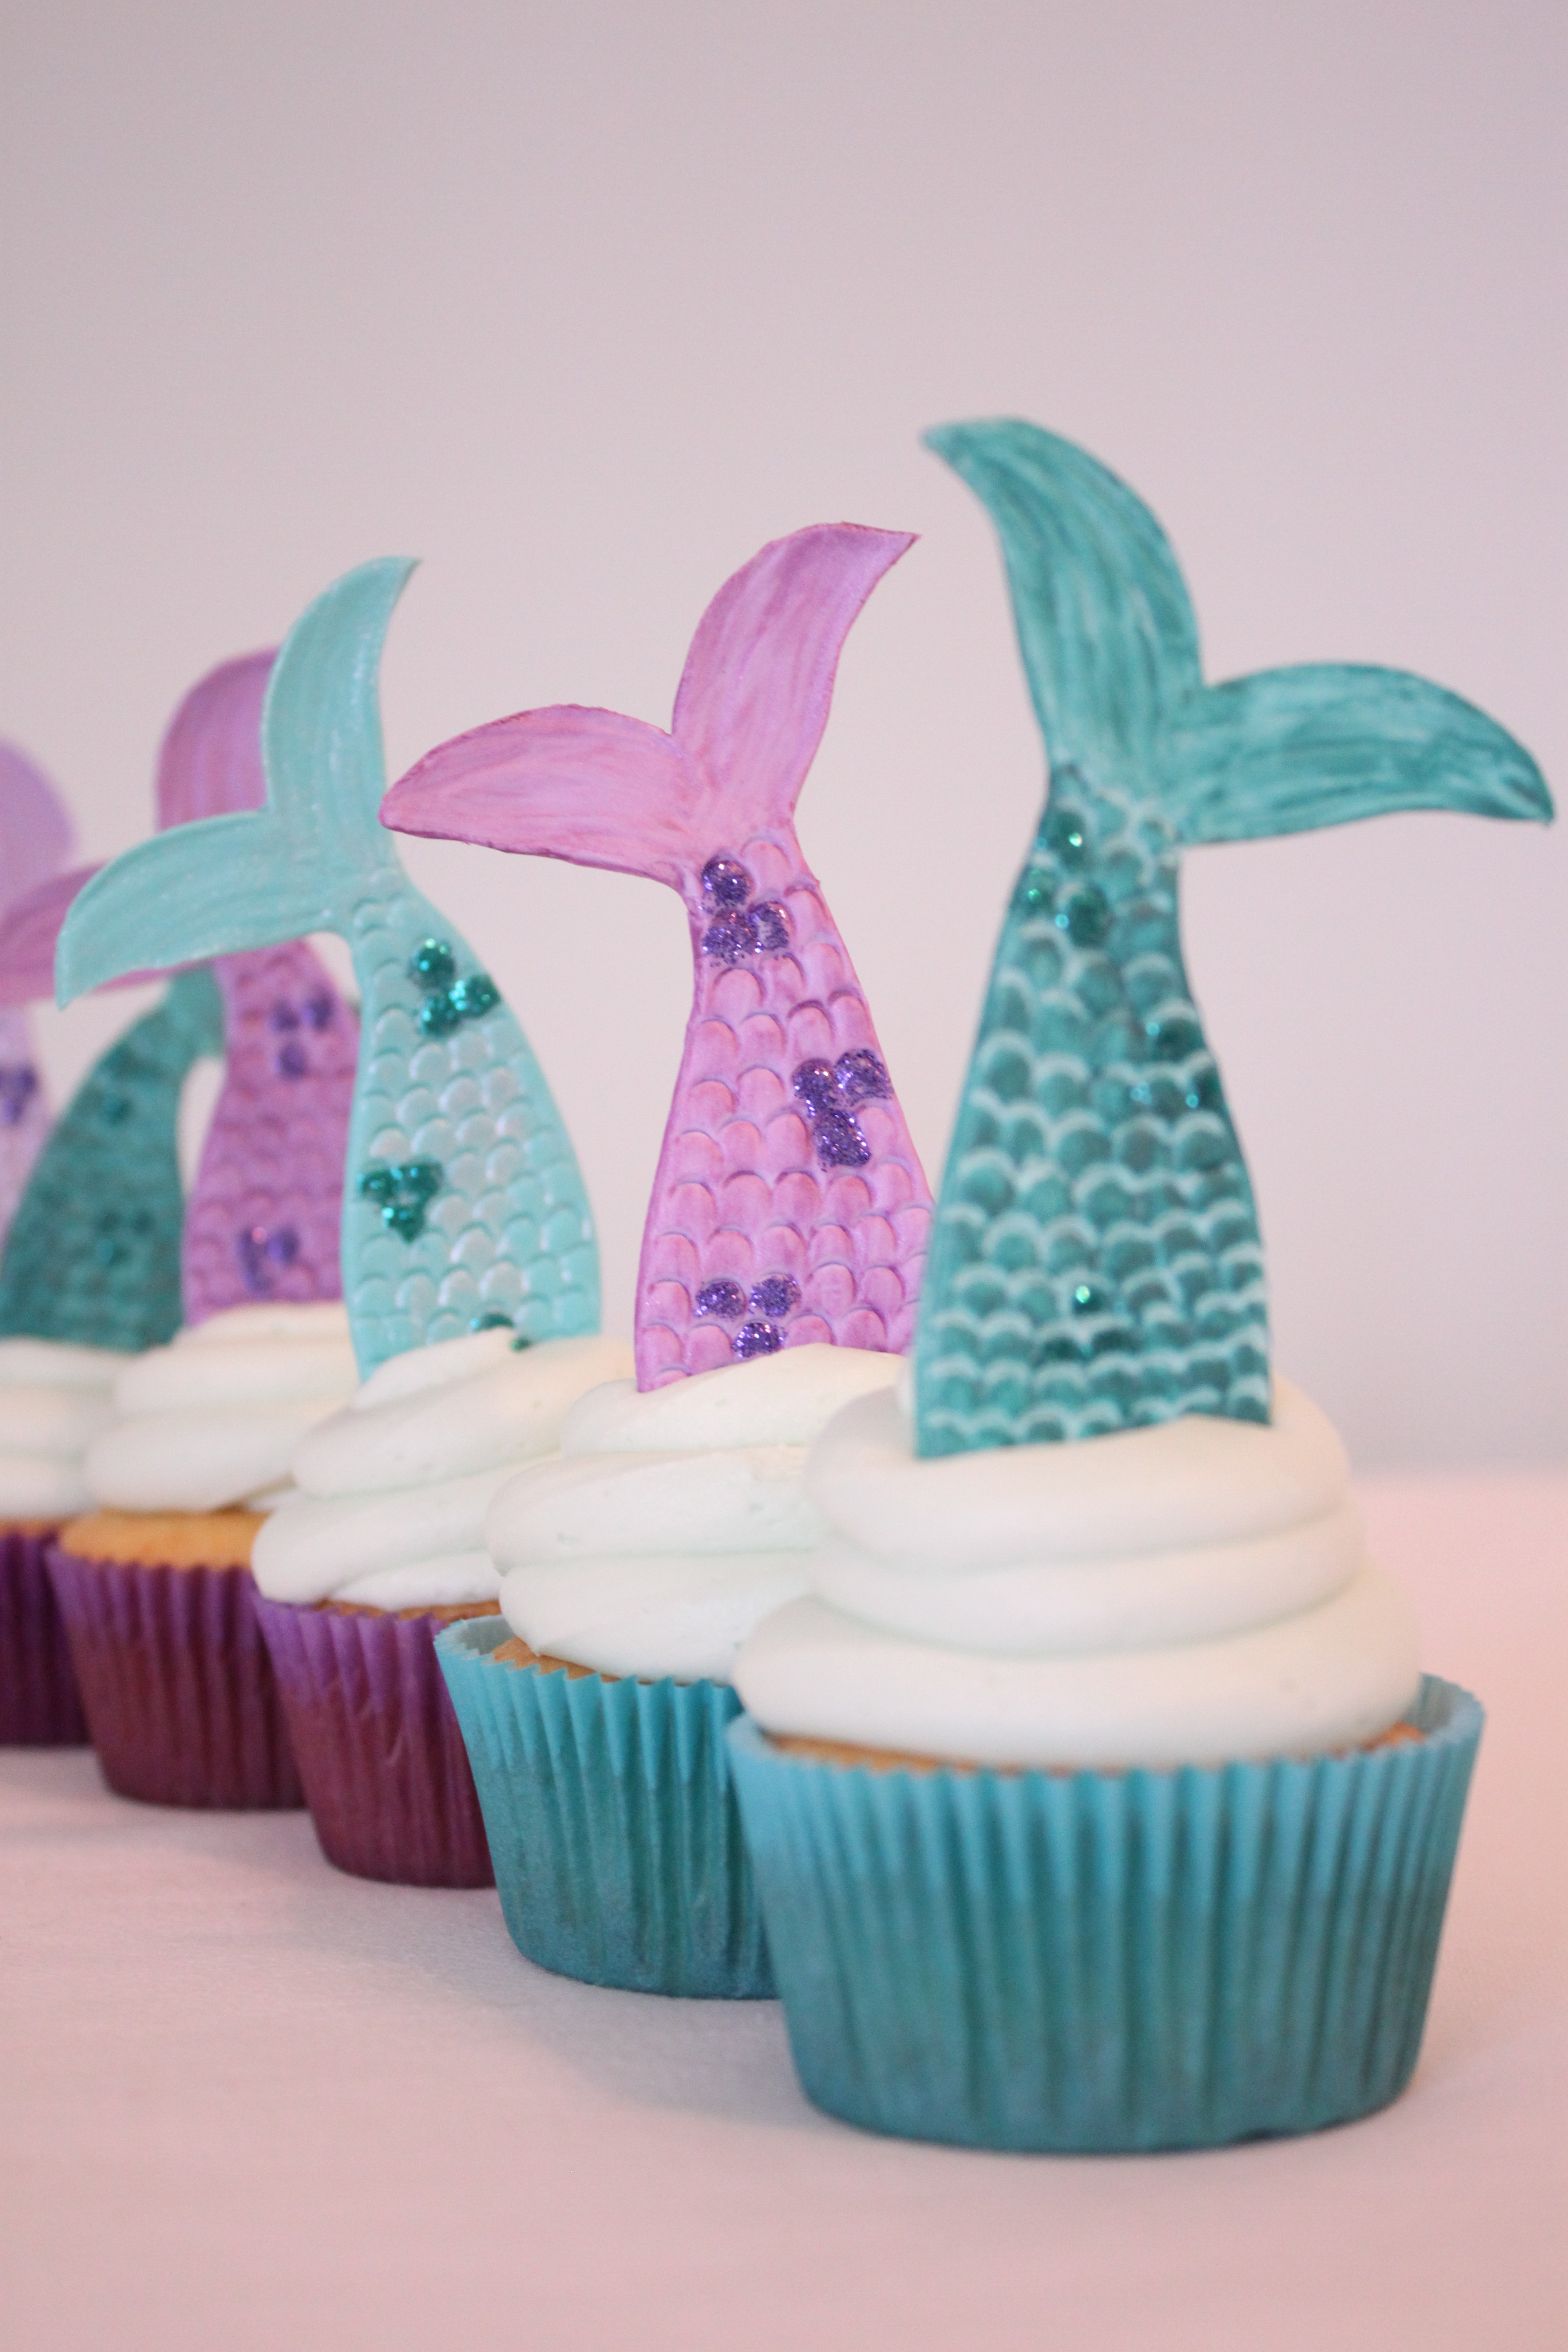 Mermaid Scale Cake Cakecentral Com